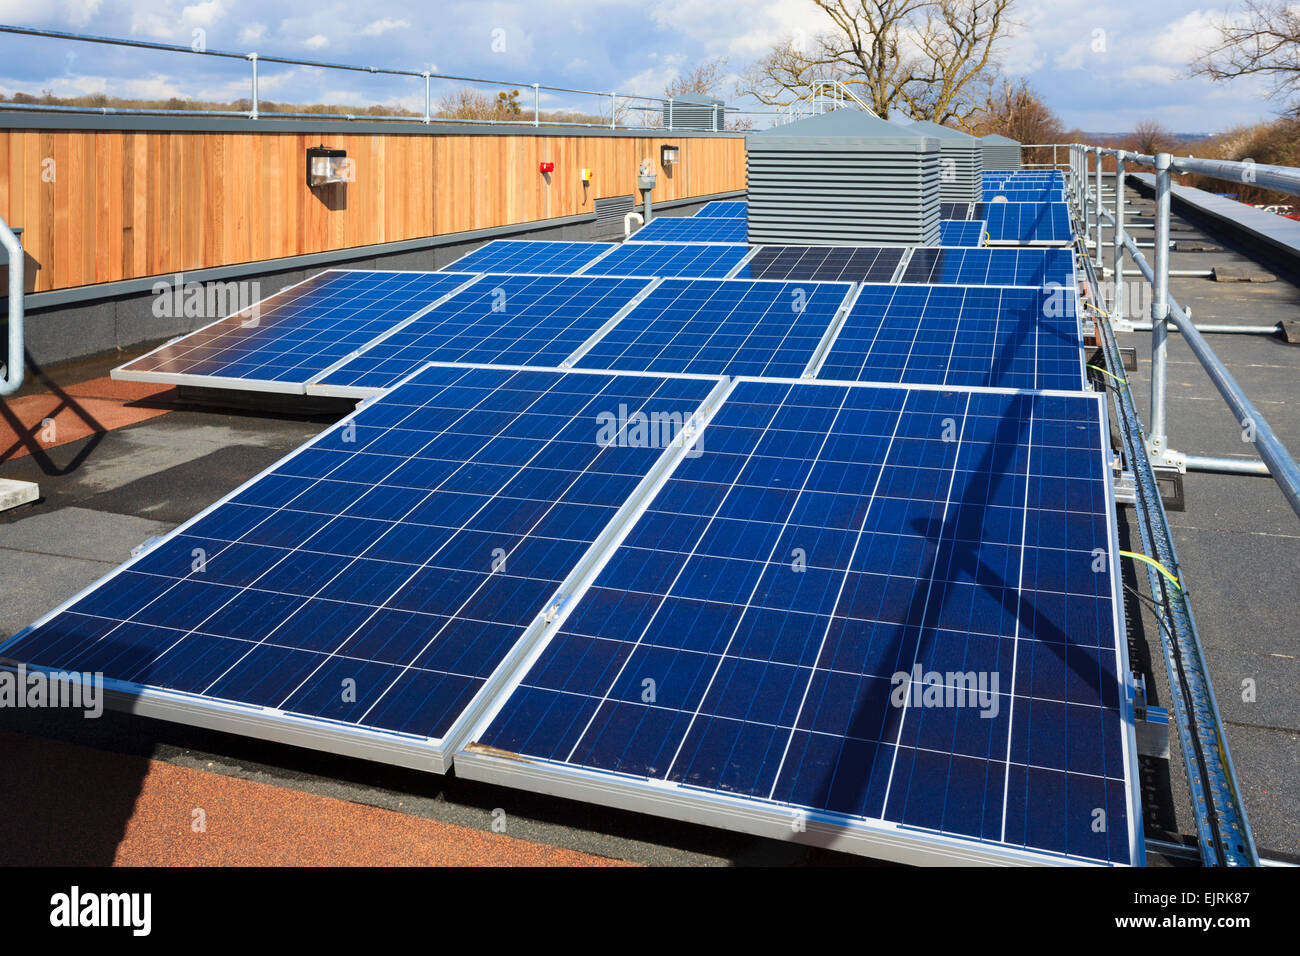 Row of photovoltaic cells on roof of modern  college building - Stock Image